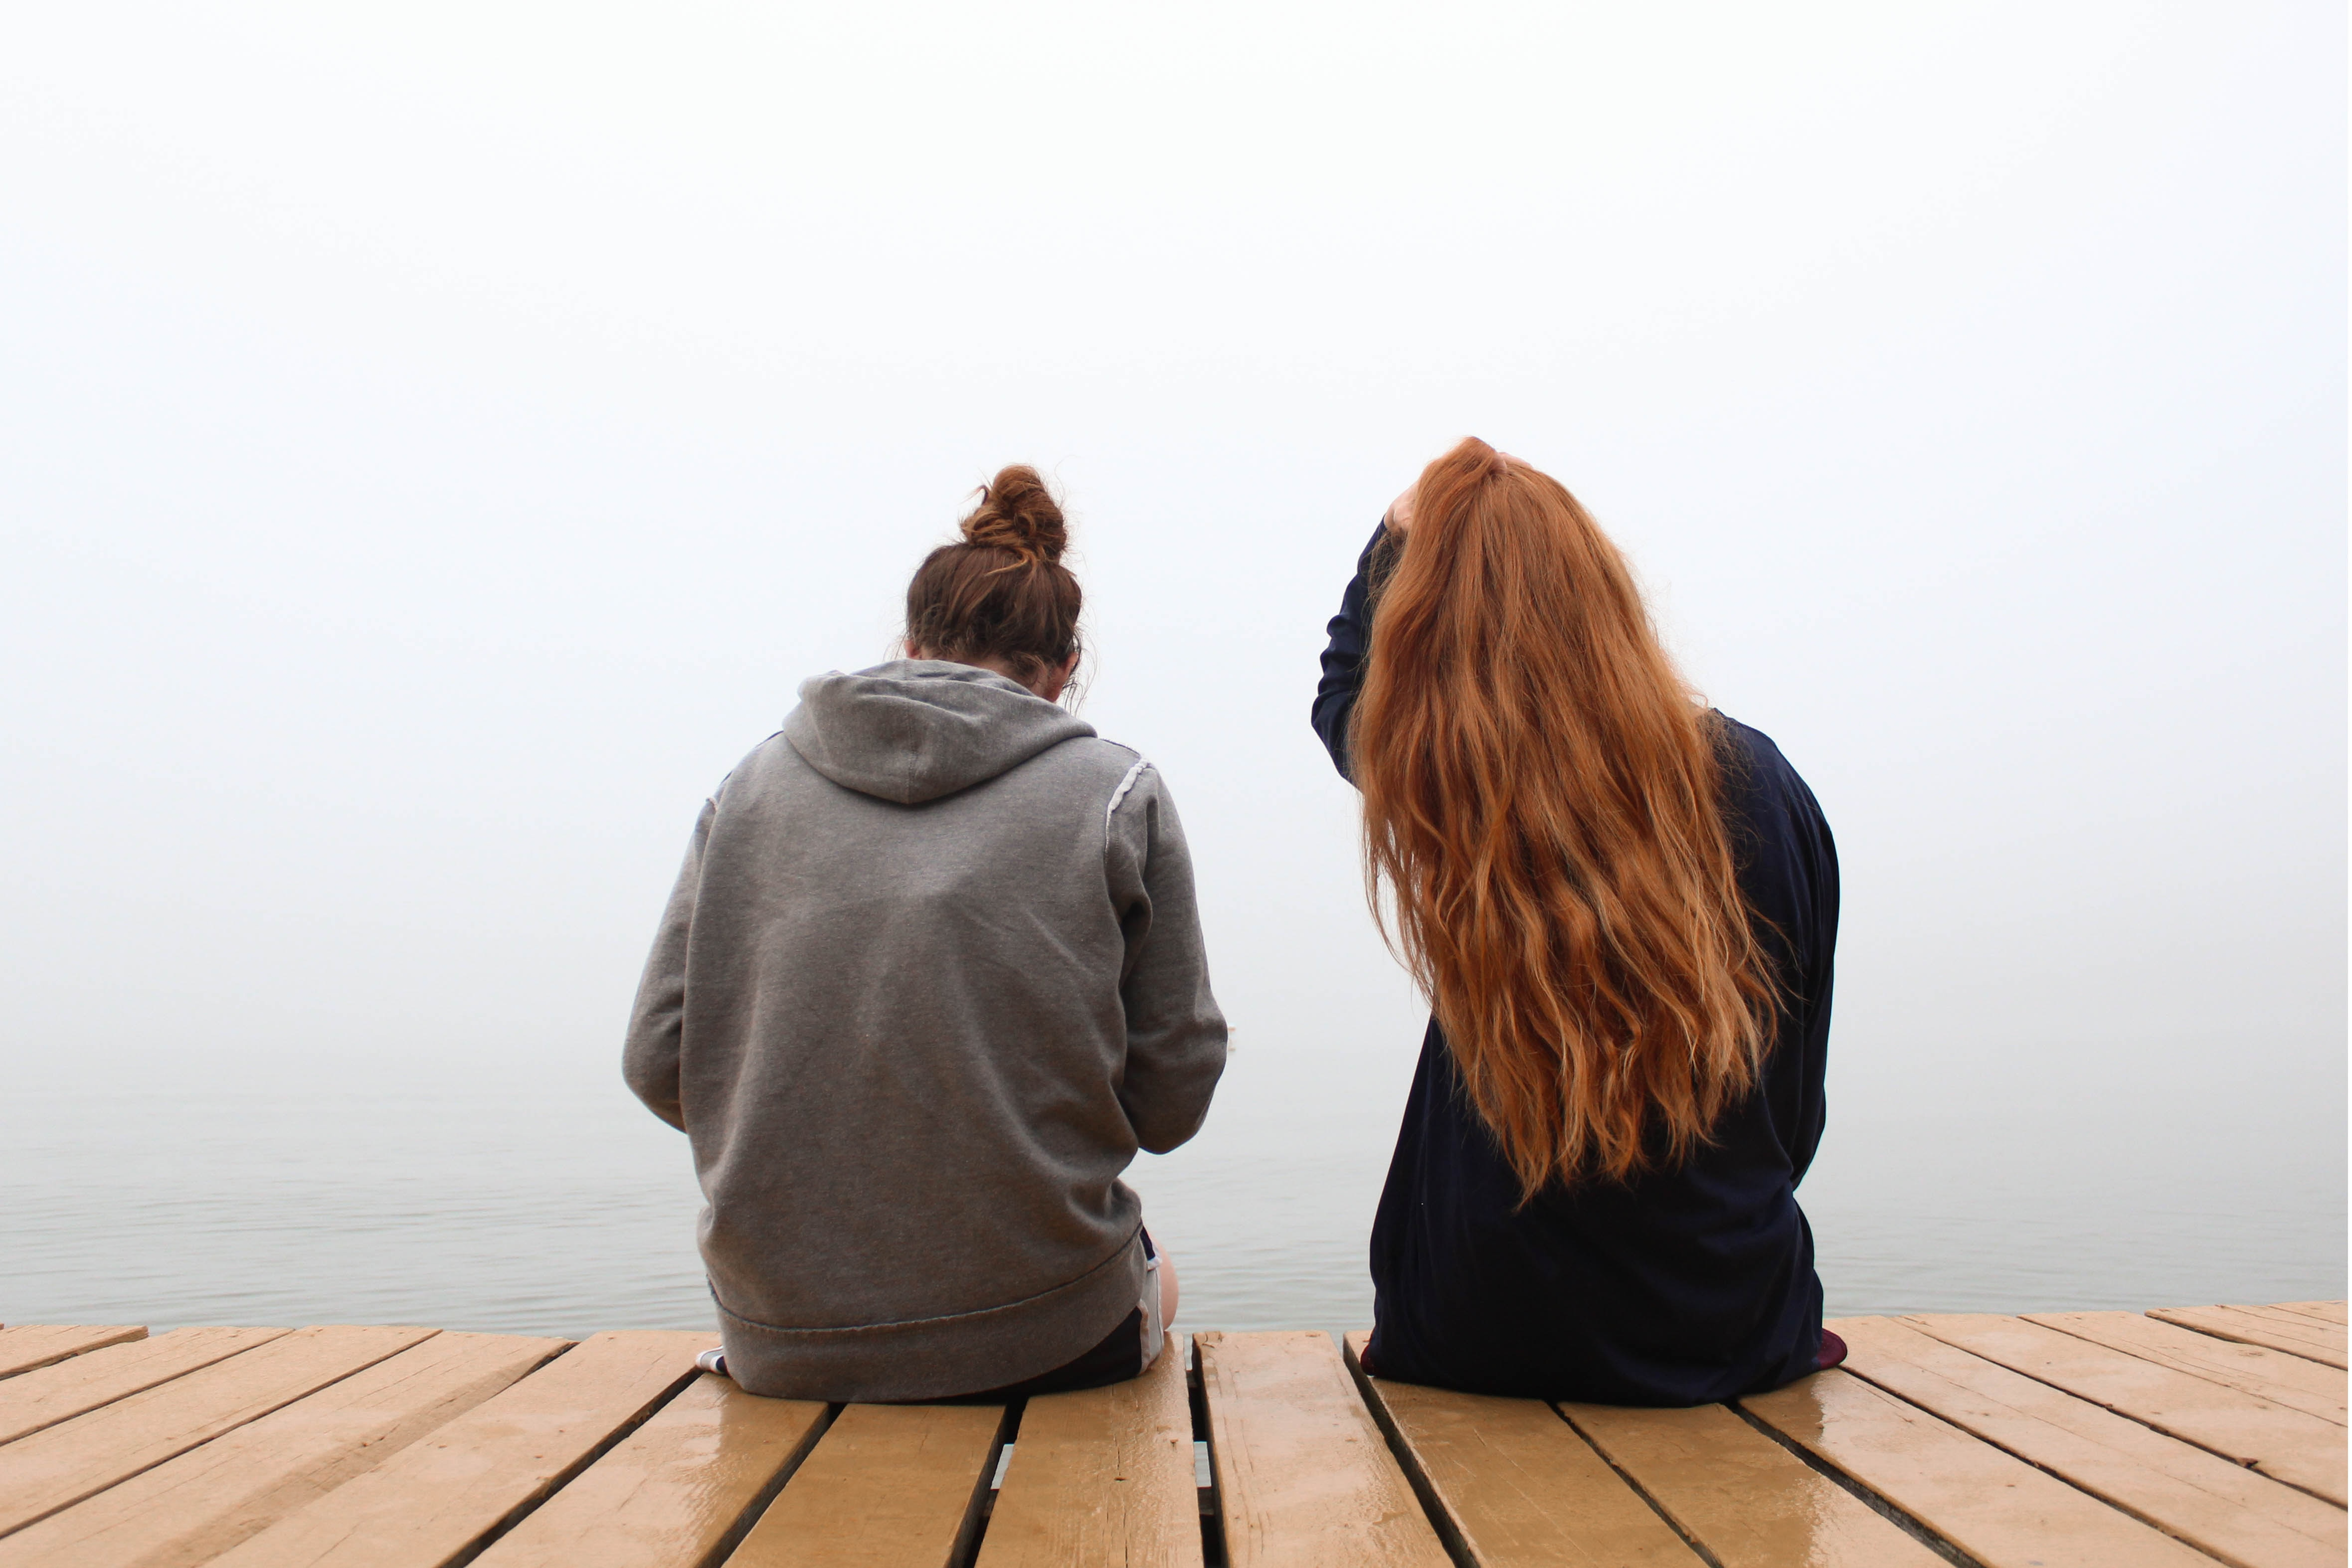 two women sitting on wooden dock over body of water